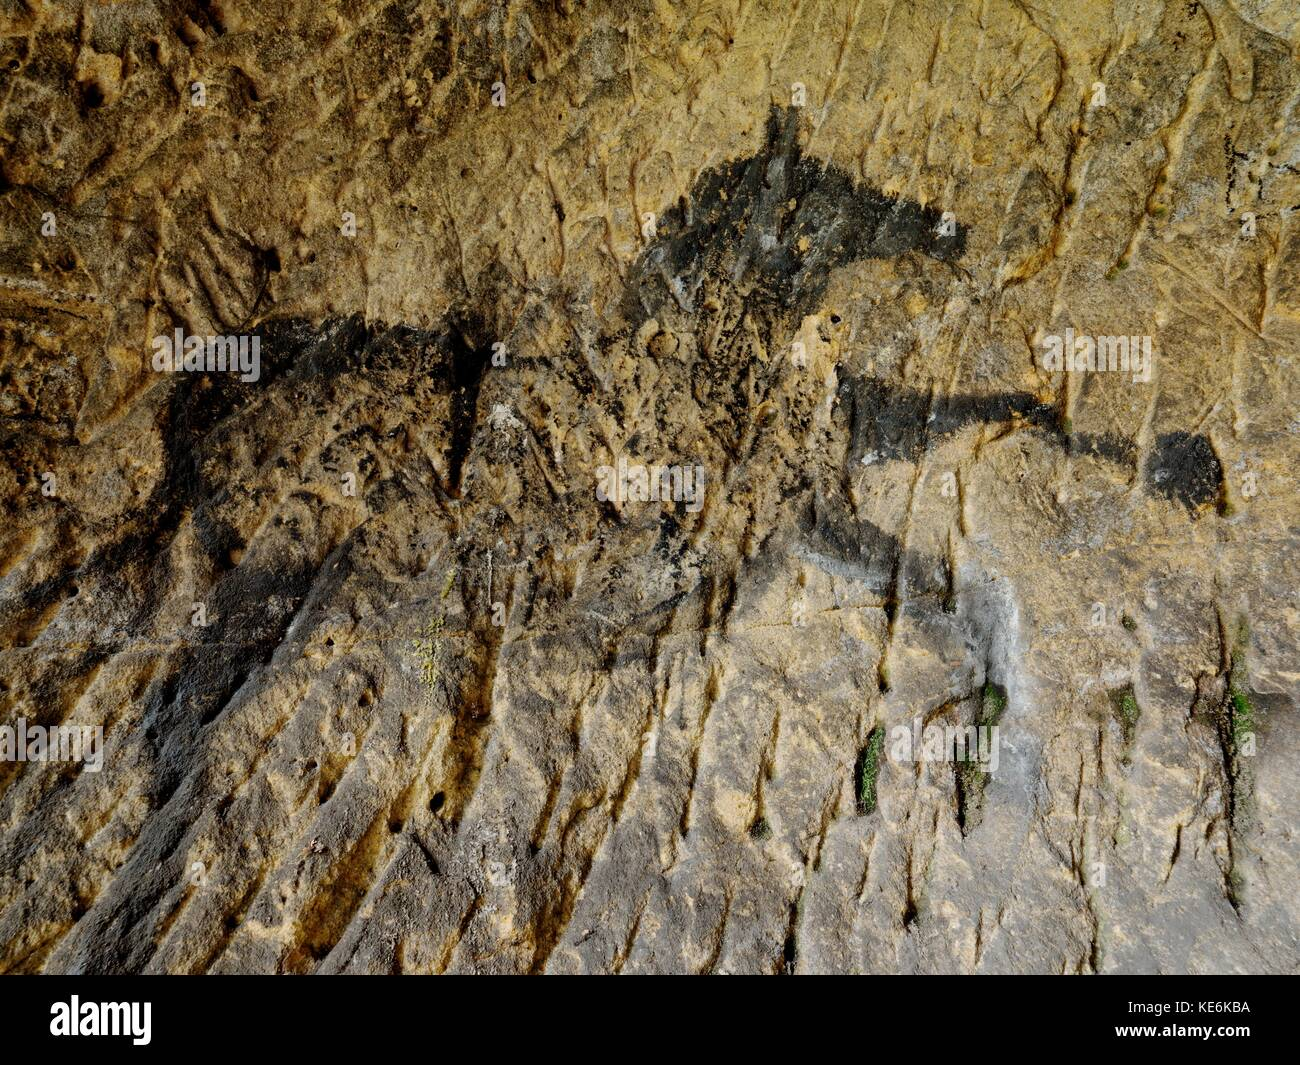 Discovery of prehistoric paint of horse in sandstone cave. Spotlight shines on historical human painting. Black - Stock Image